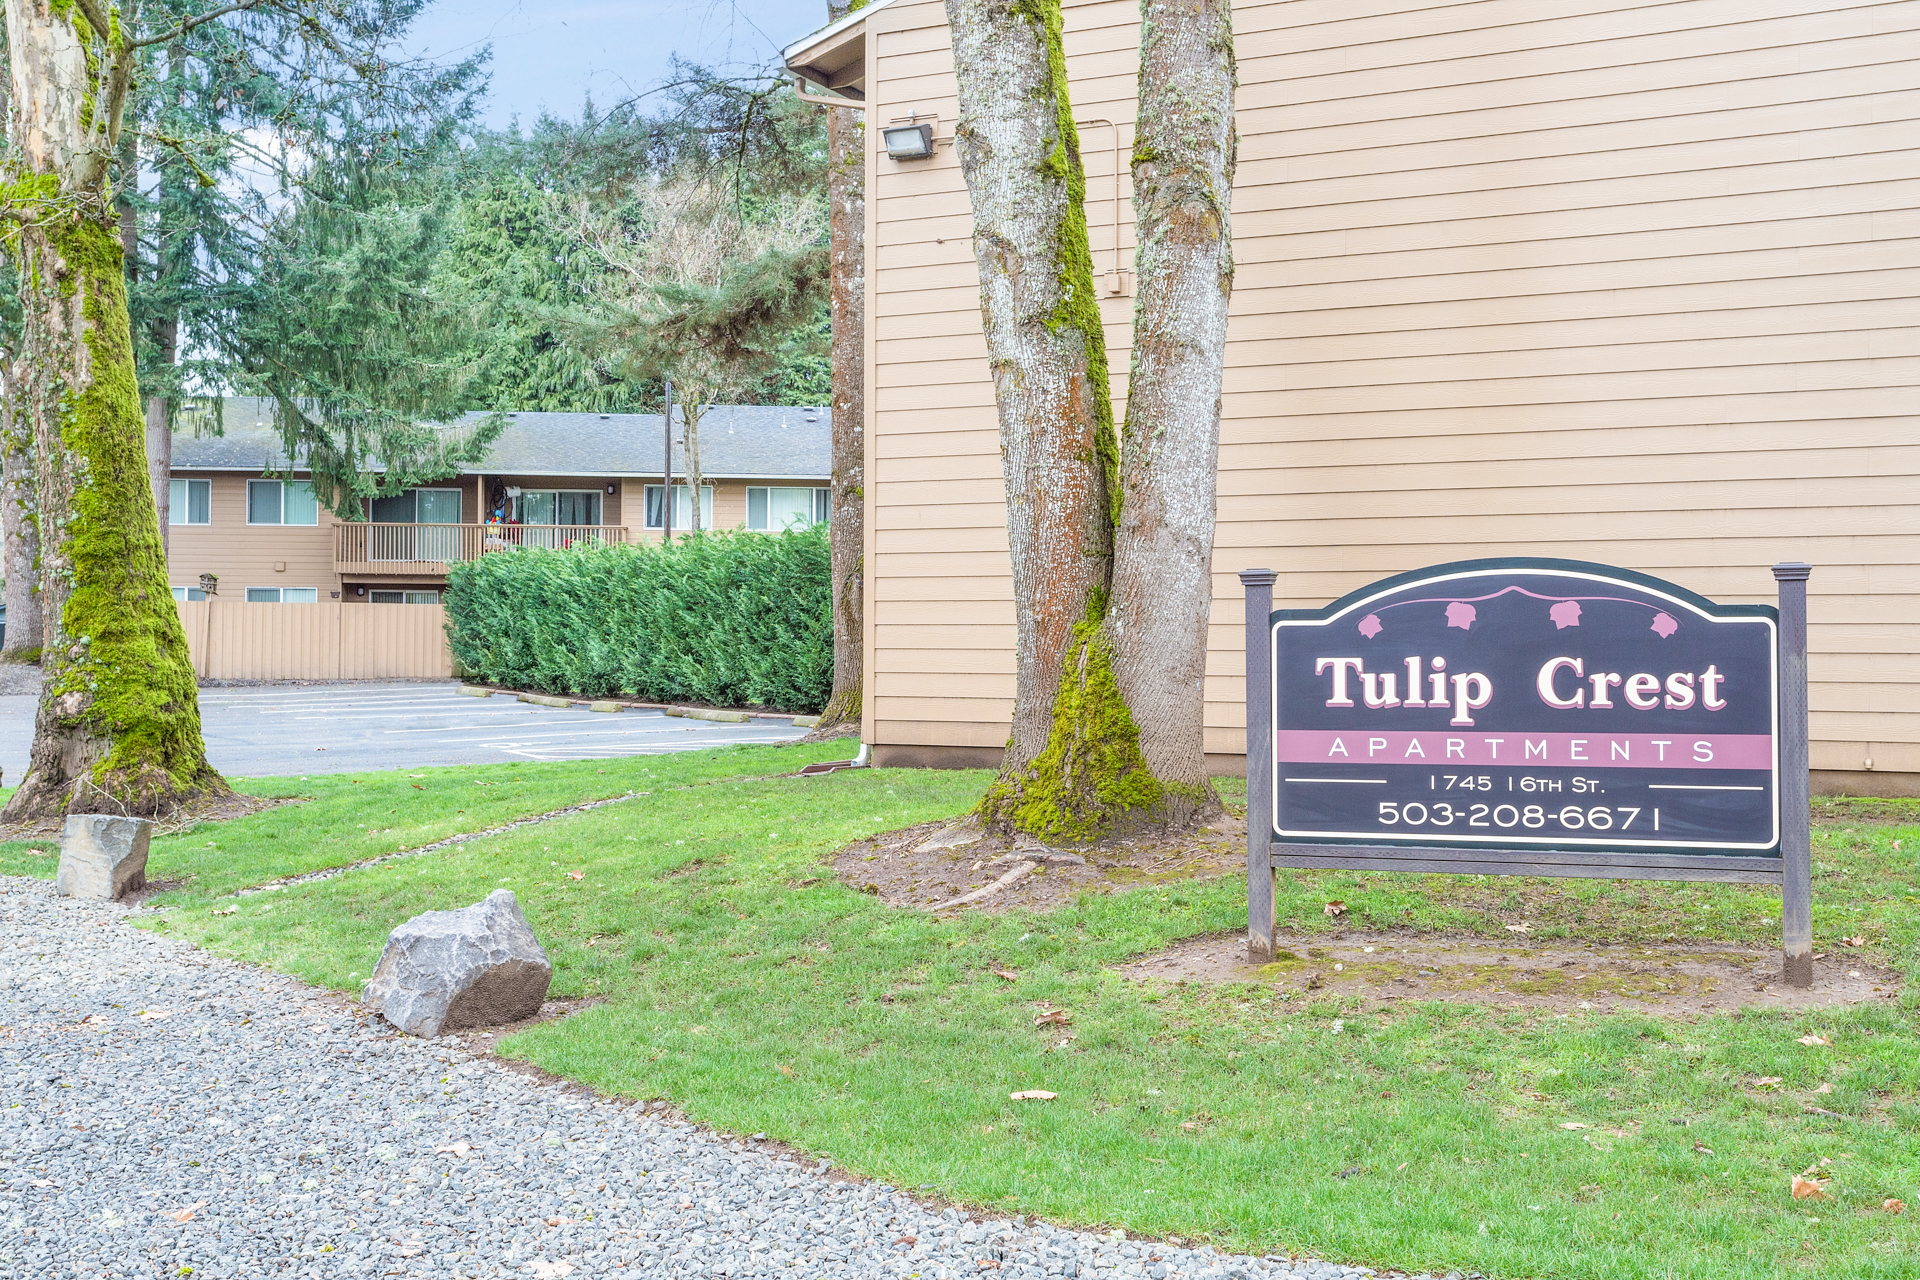 Tulip Crest Apartments